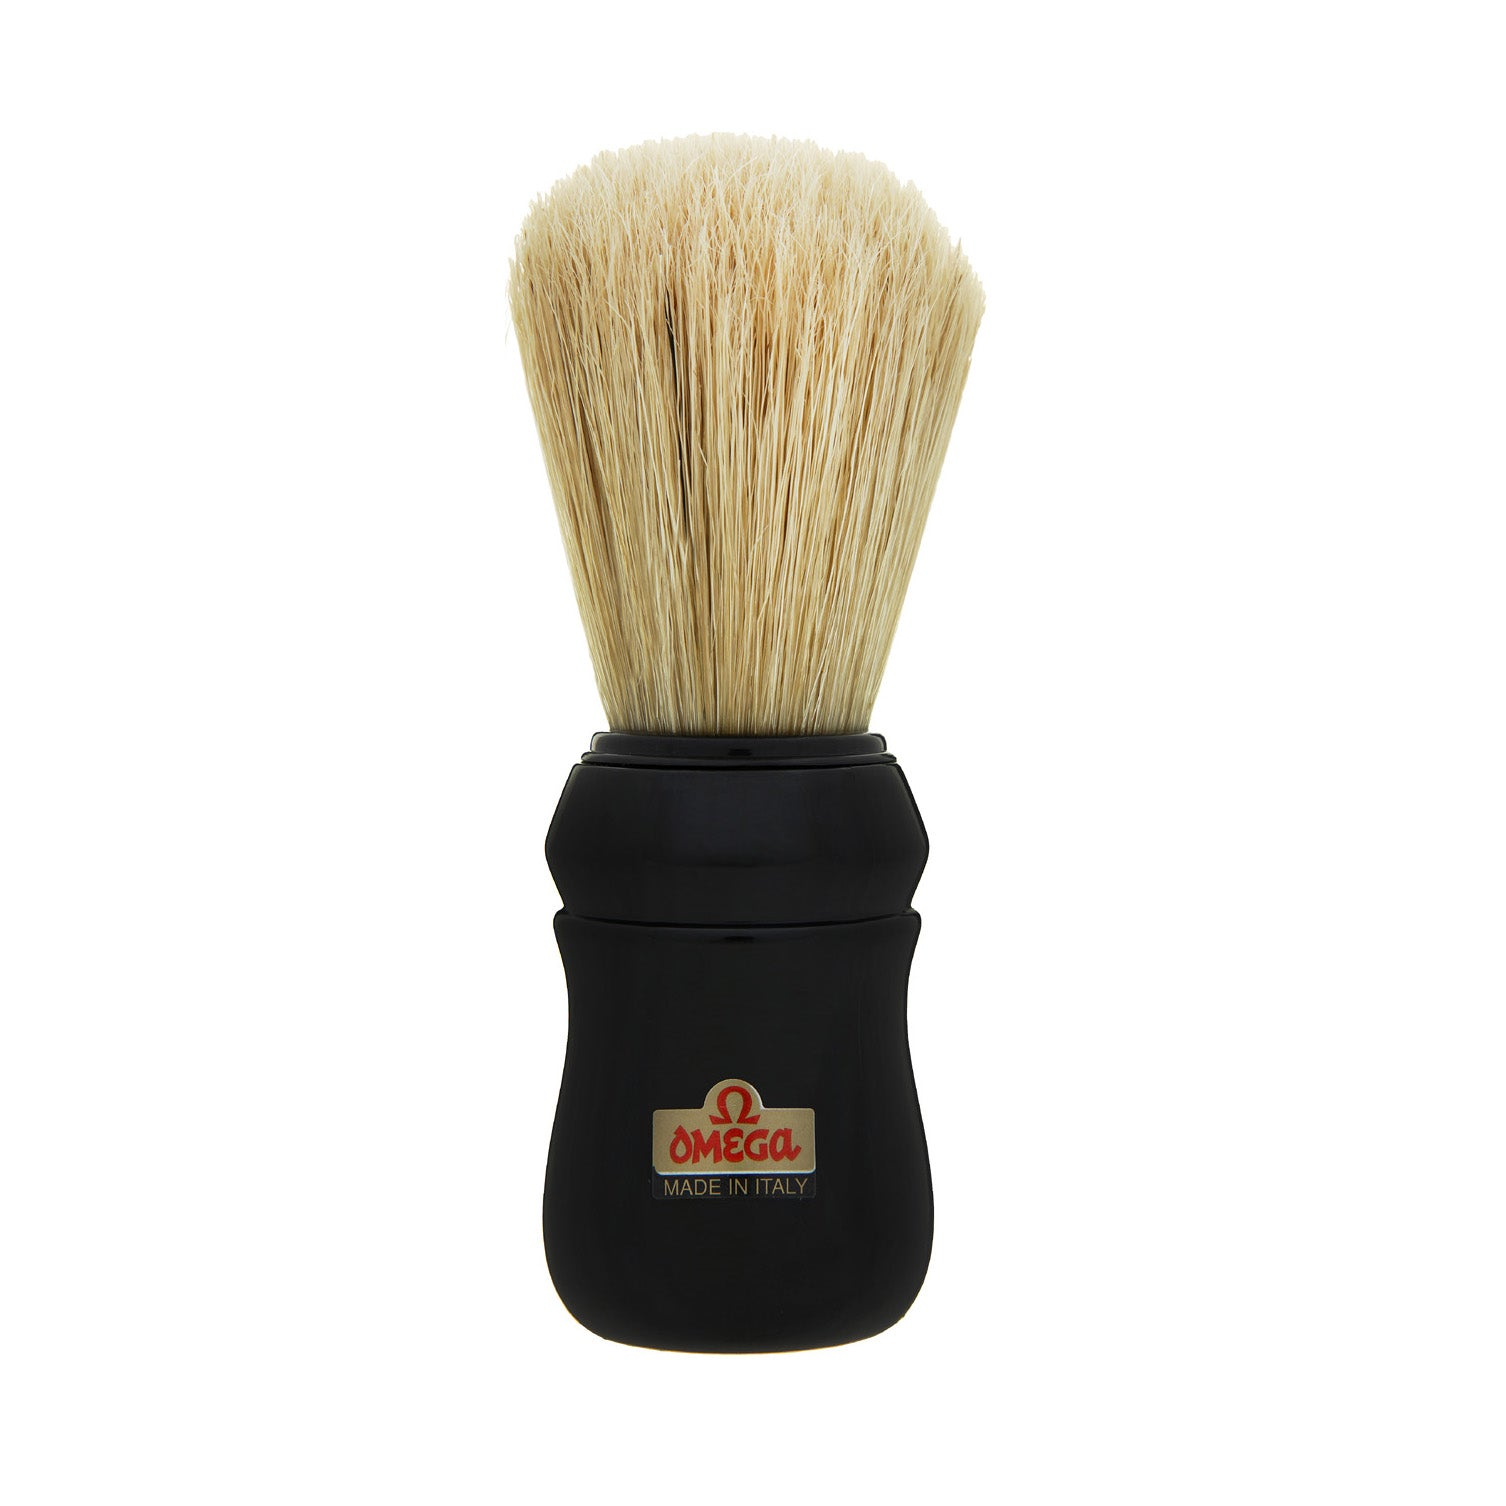 Omega - Boar Bristle Shaving Brush, ABS handle, Black - 10049